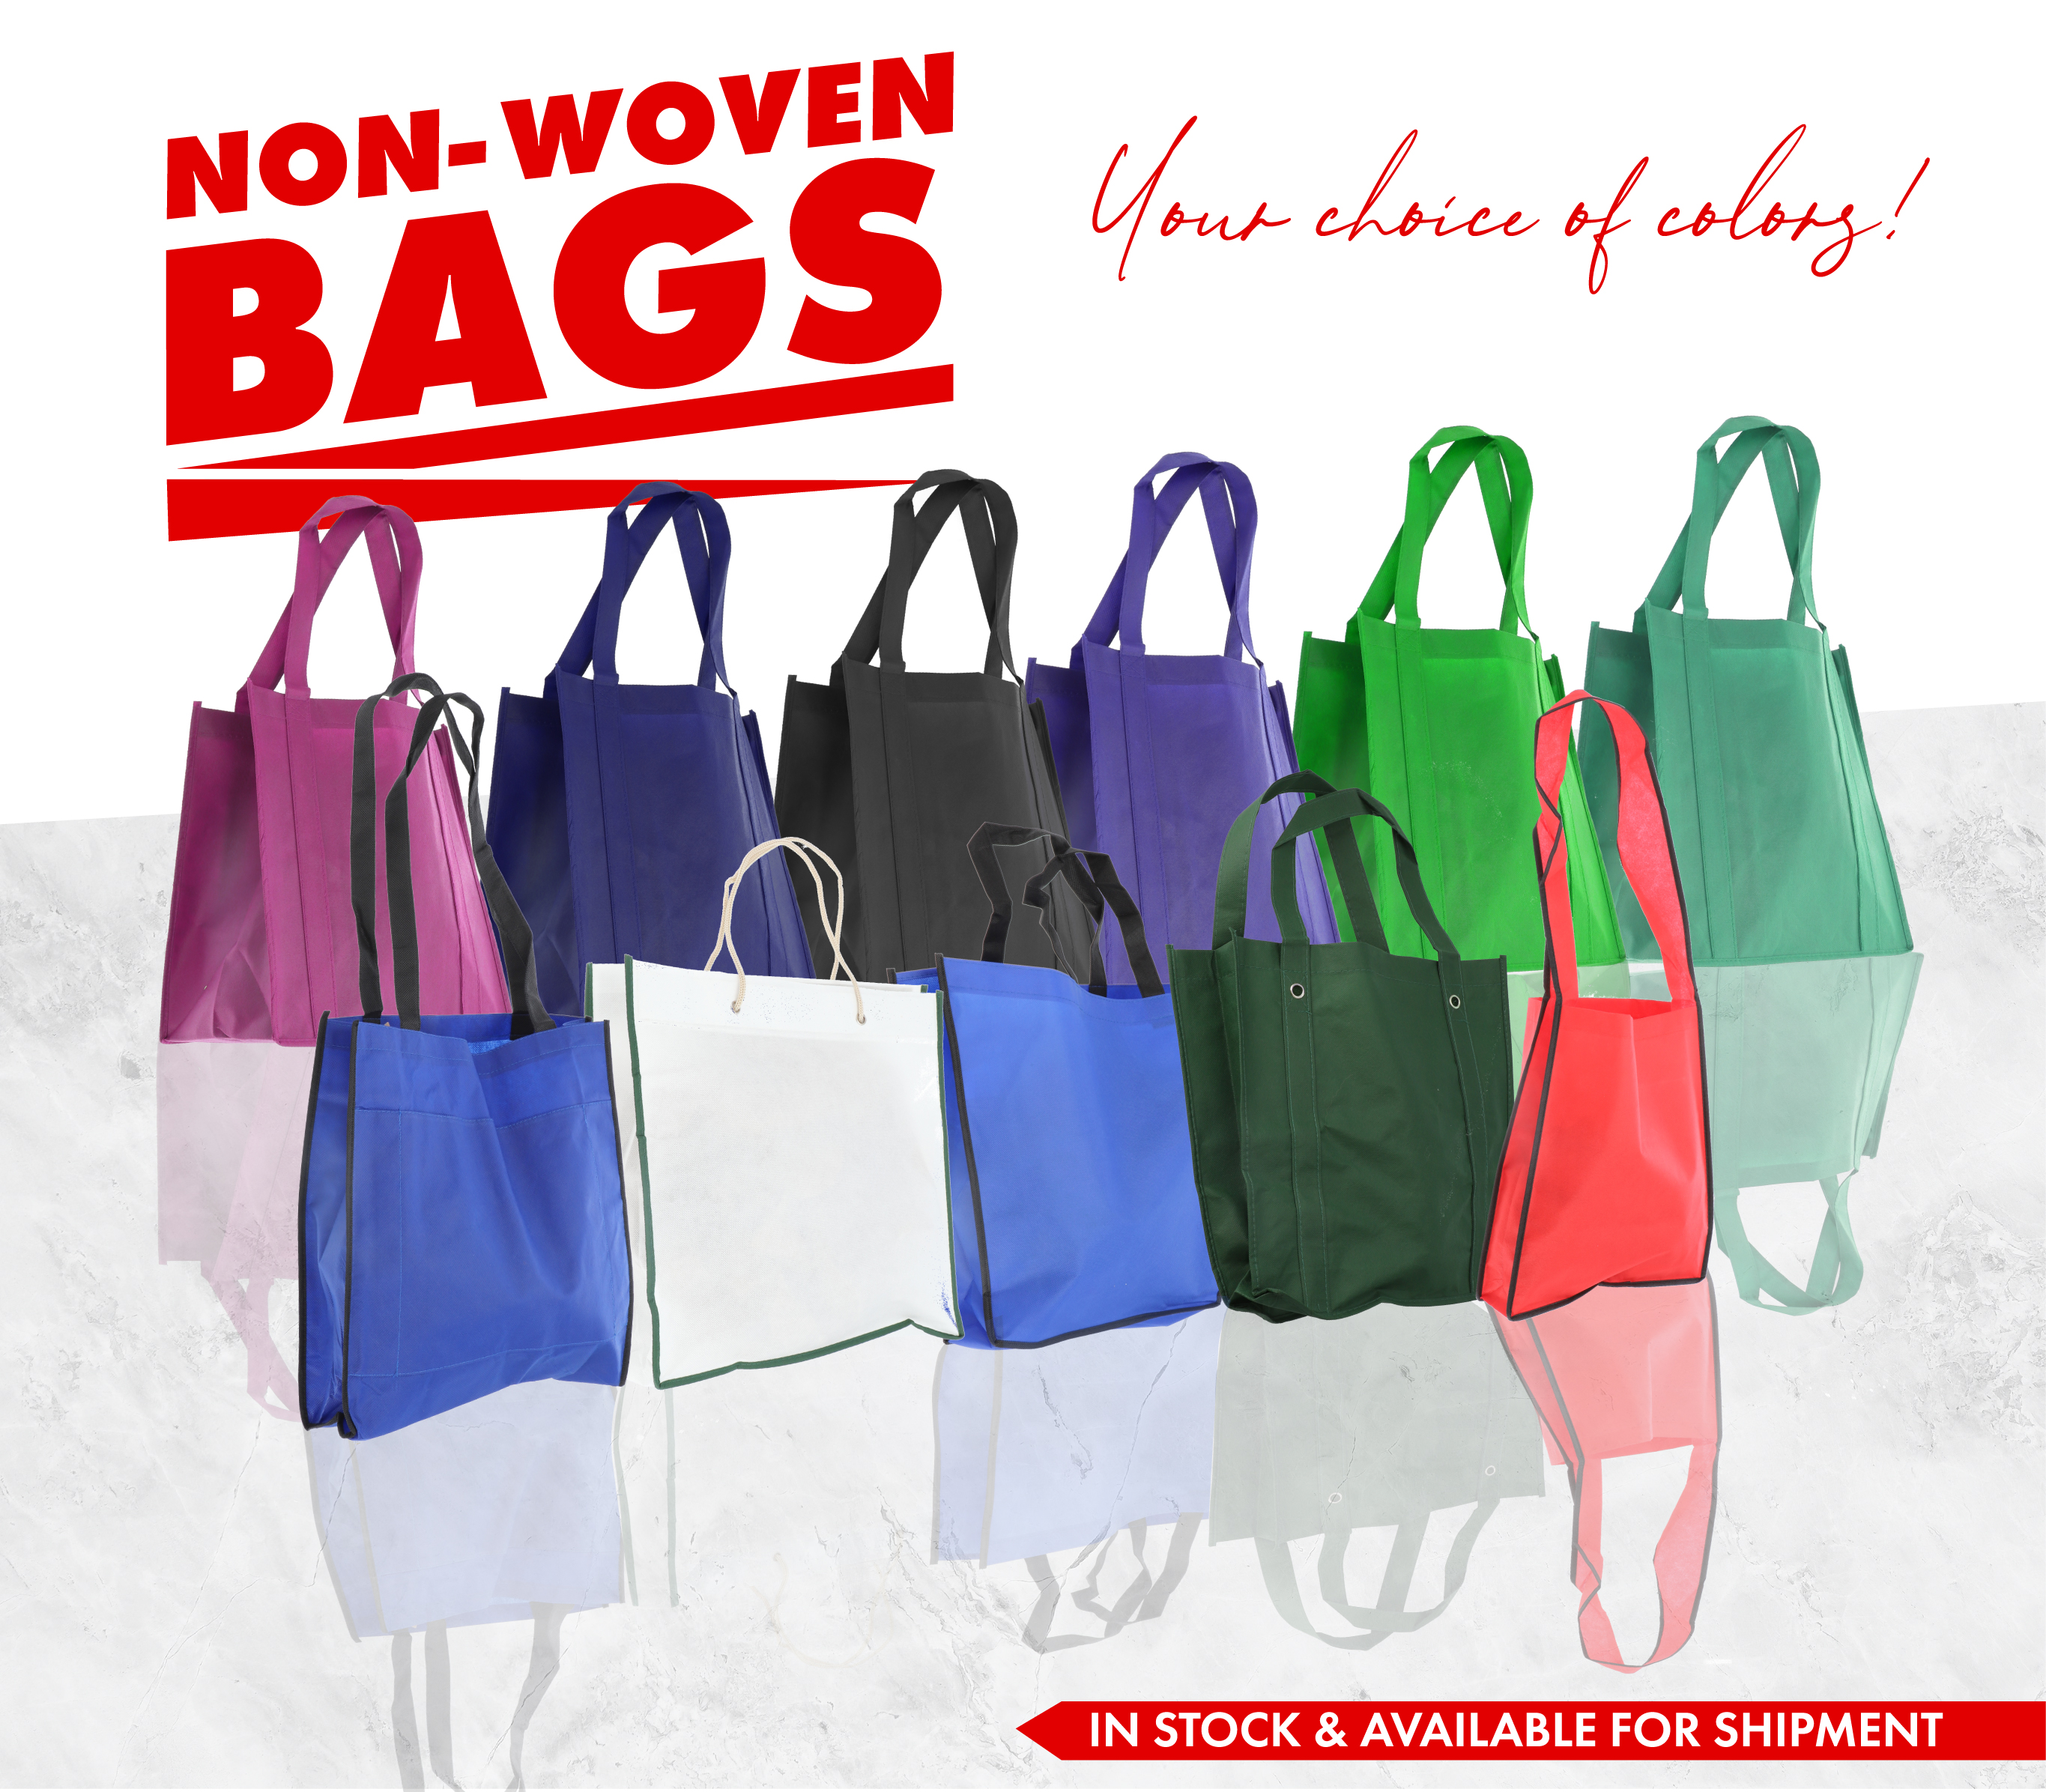 Jump to our Wholesale Non-woven bags